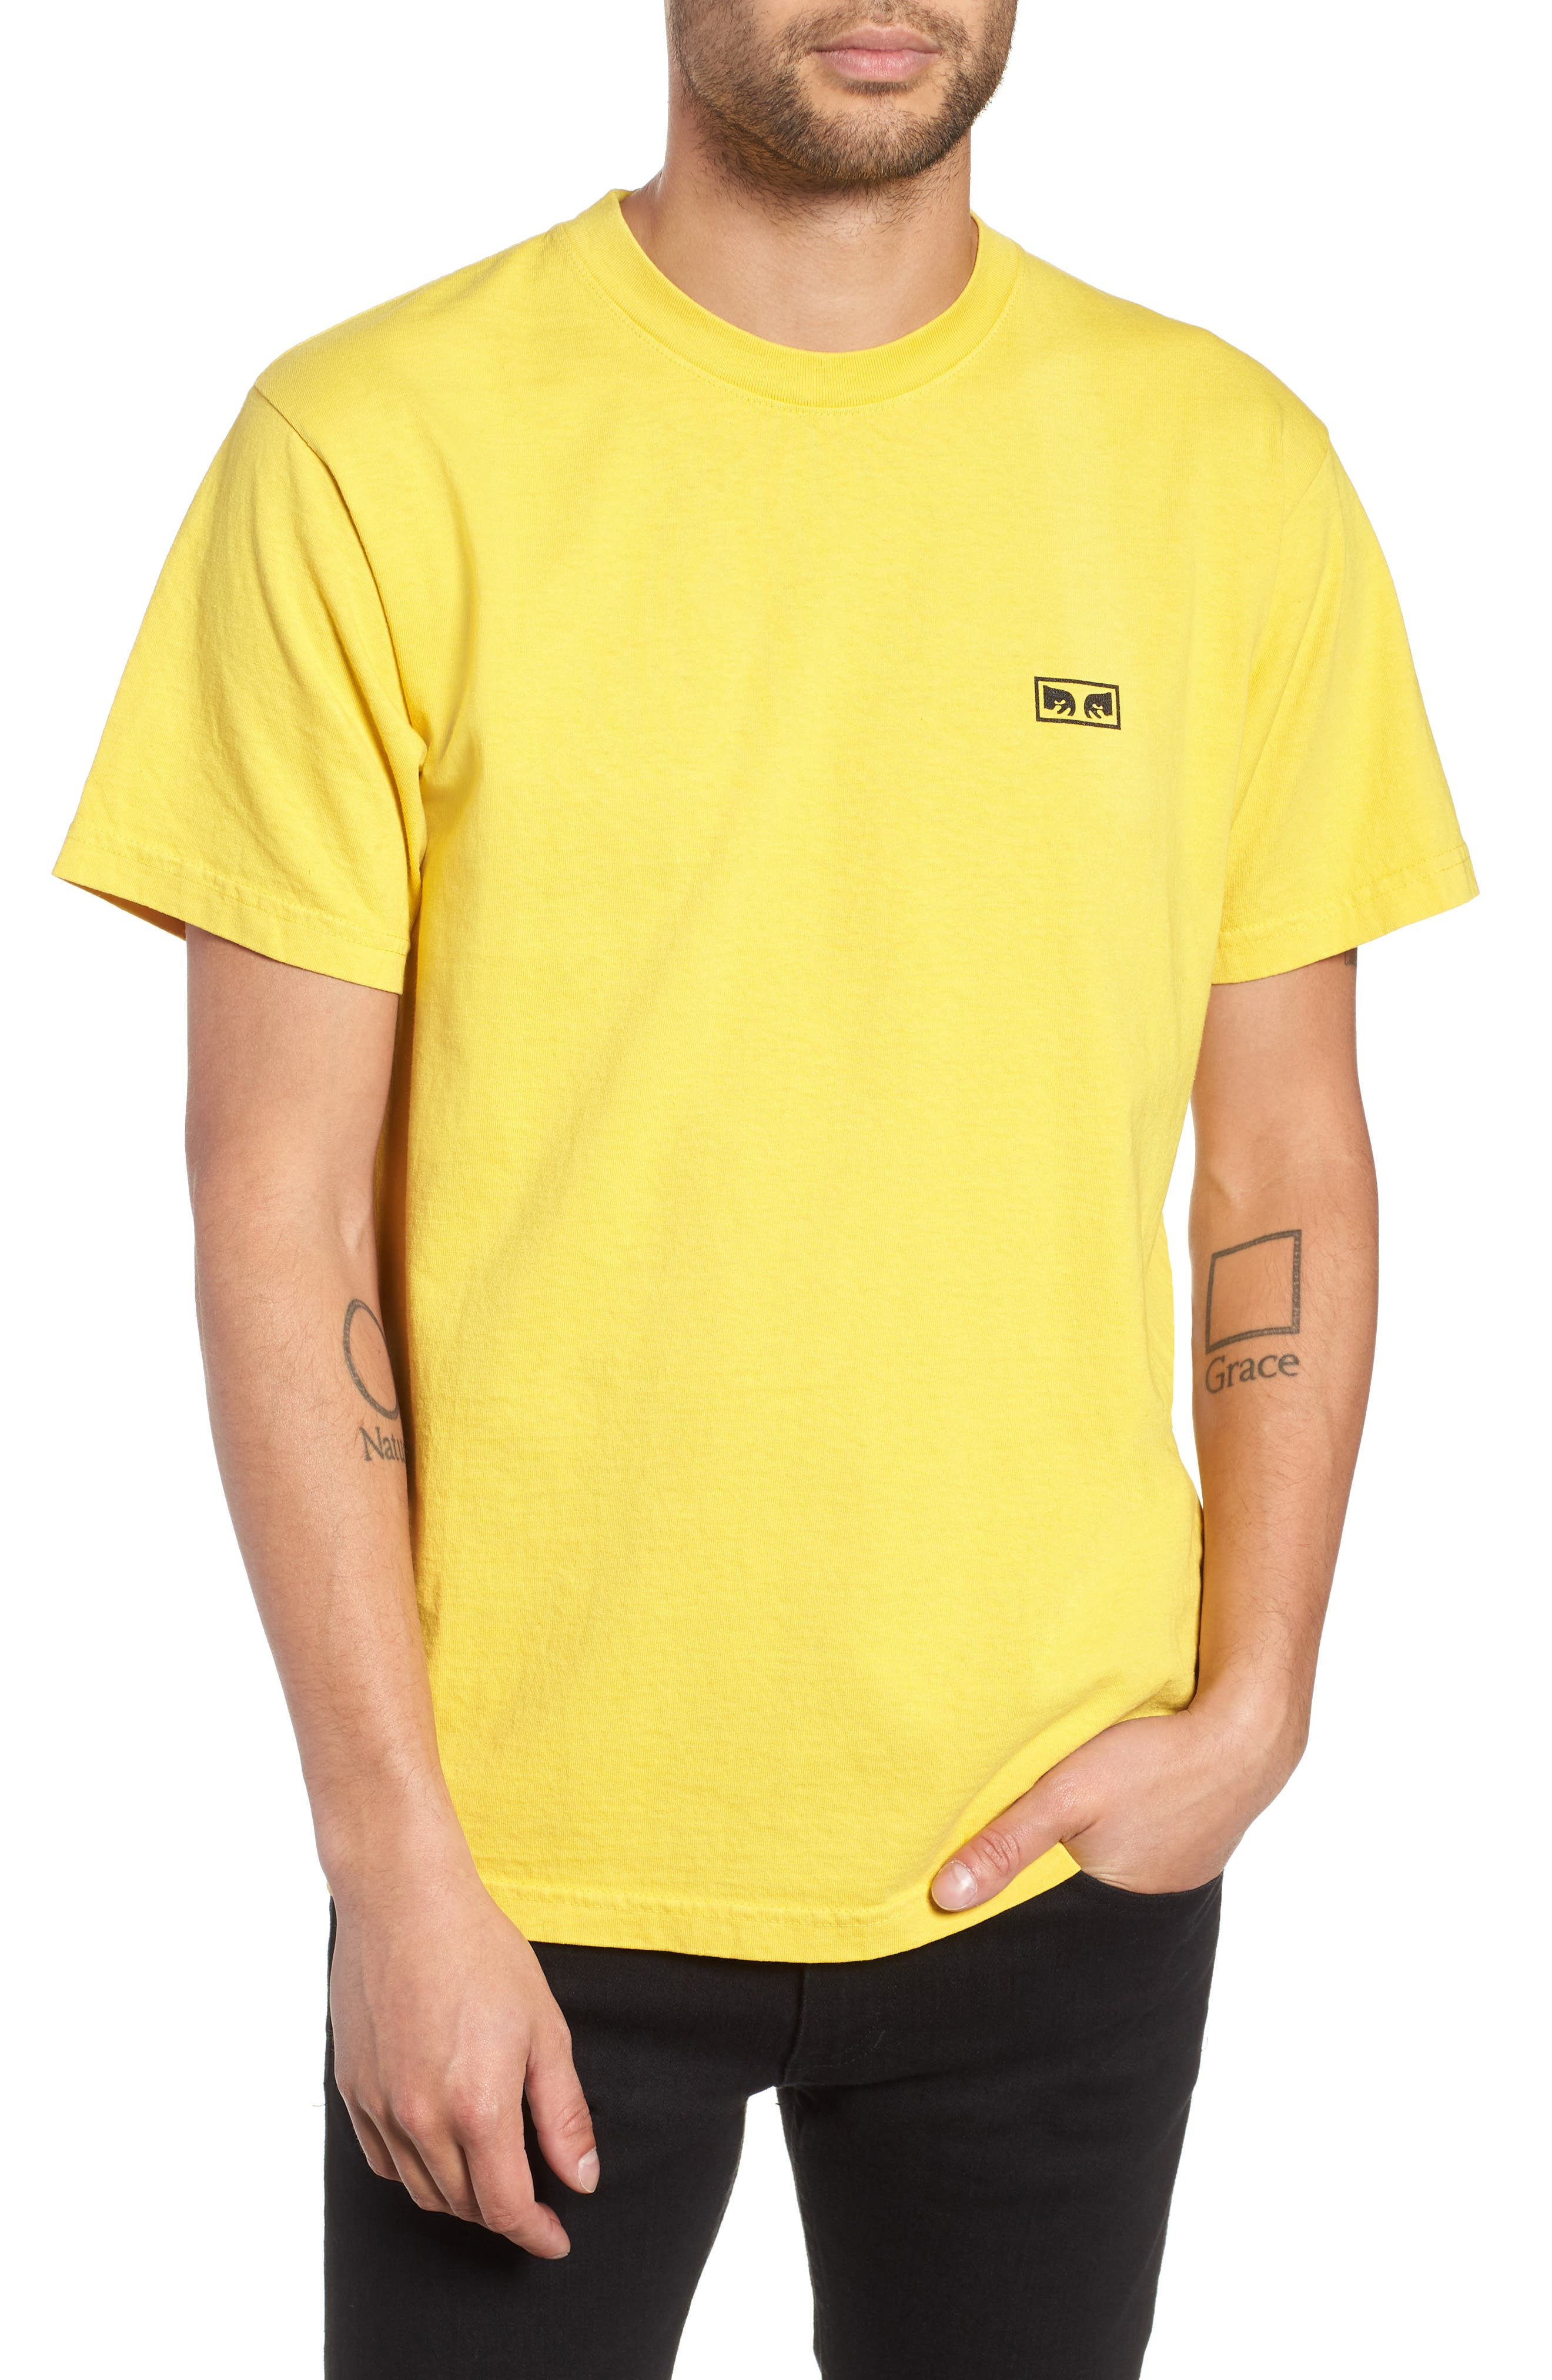 No One Box T-Shirt,                         Main,                         color, SPECTRA YELLOW